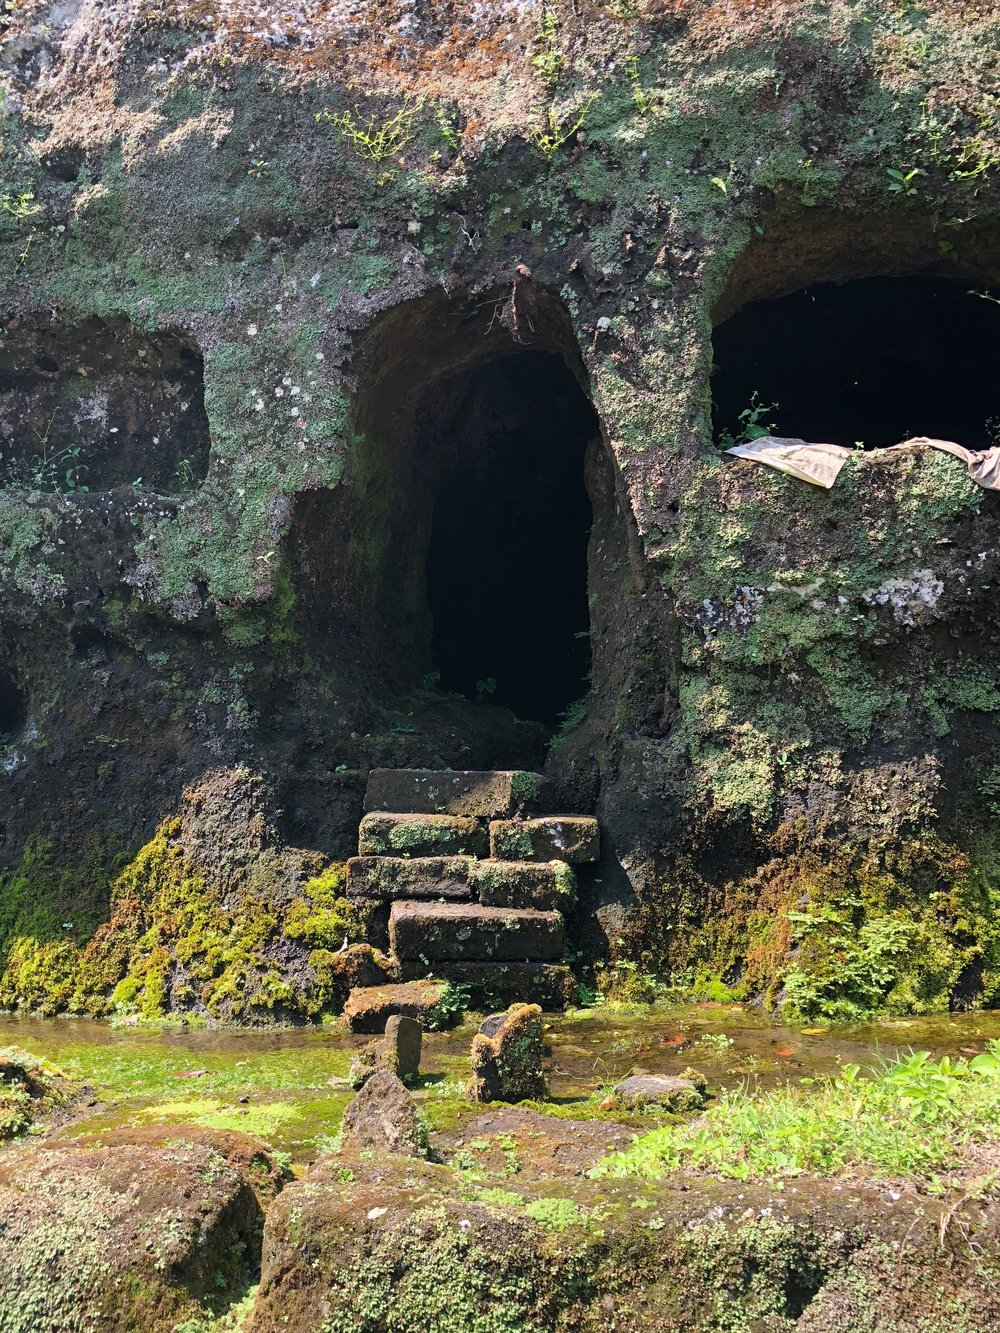 The caretakers didn't get the best digs — they lived in these caves